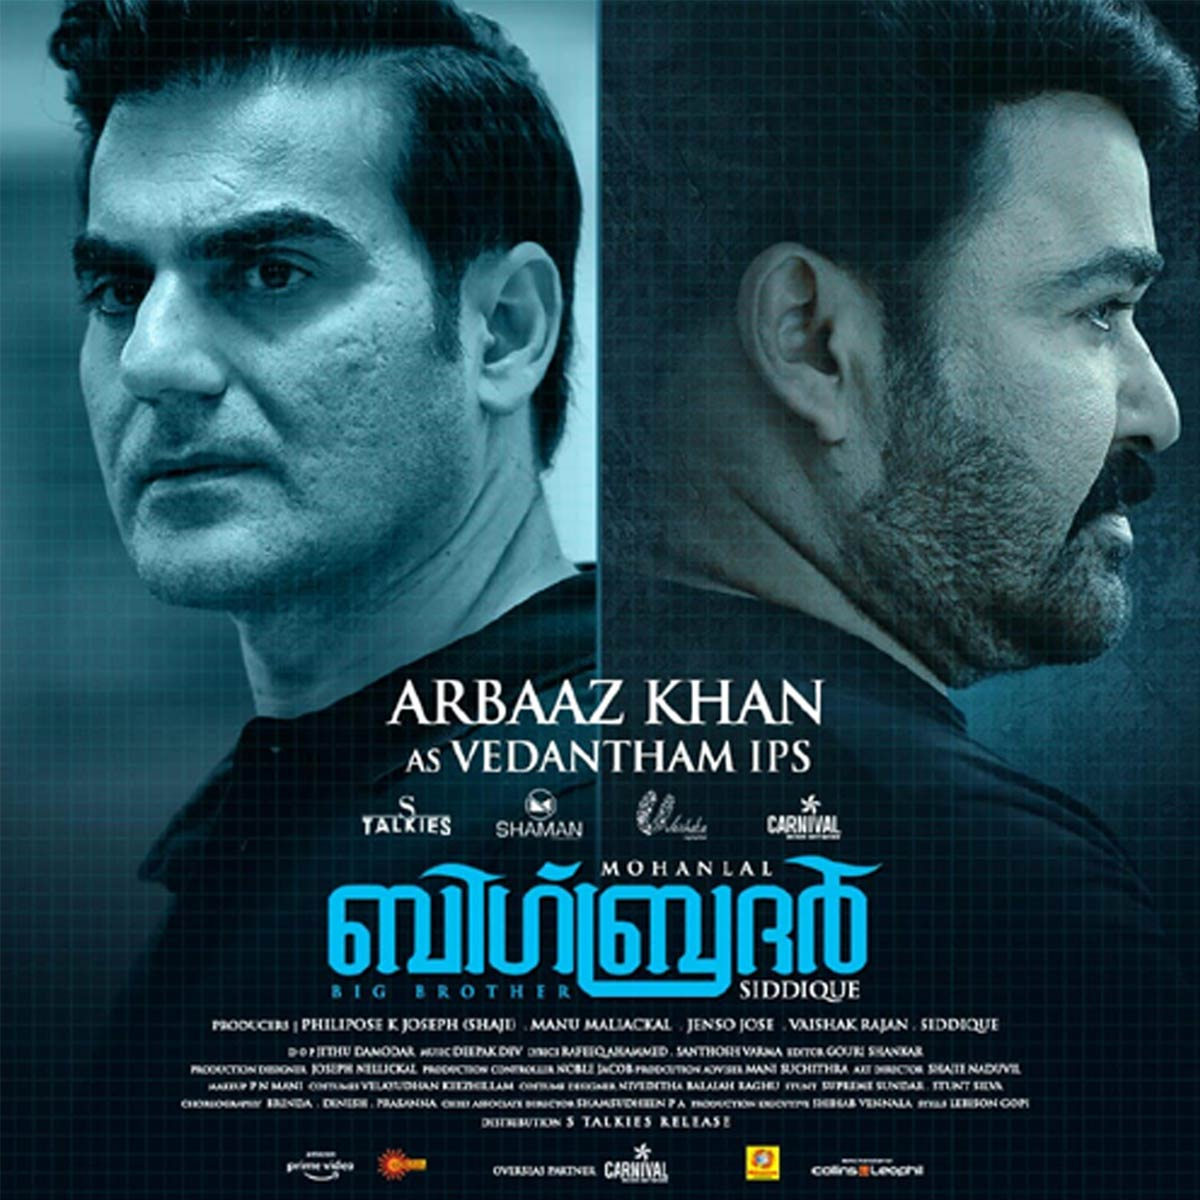 Mohanlal's Big Brother: New poster reveals Arbaaz's role